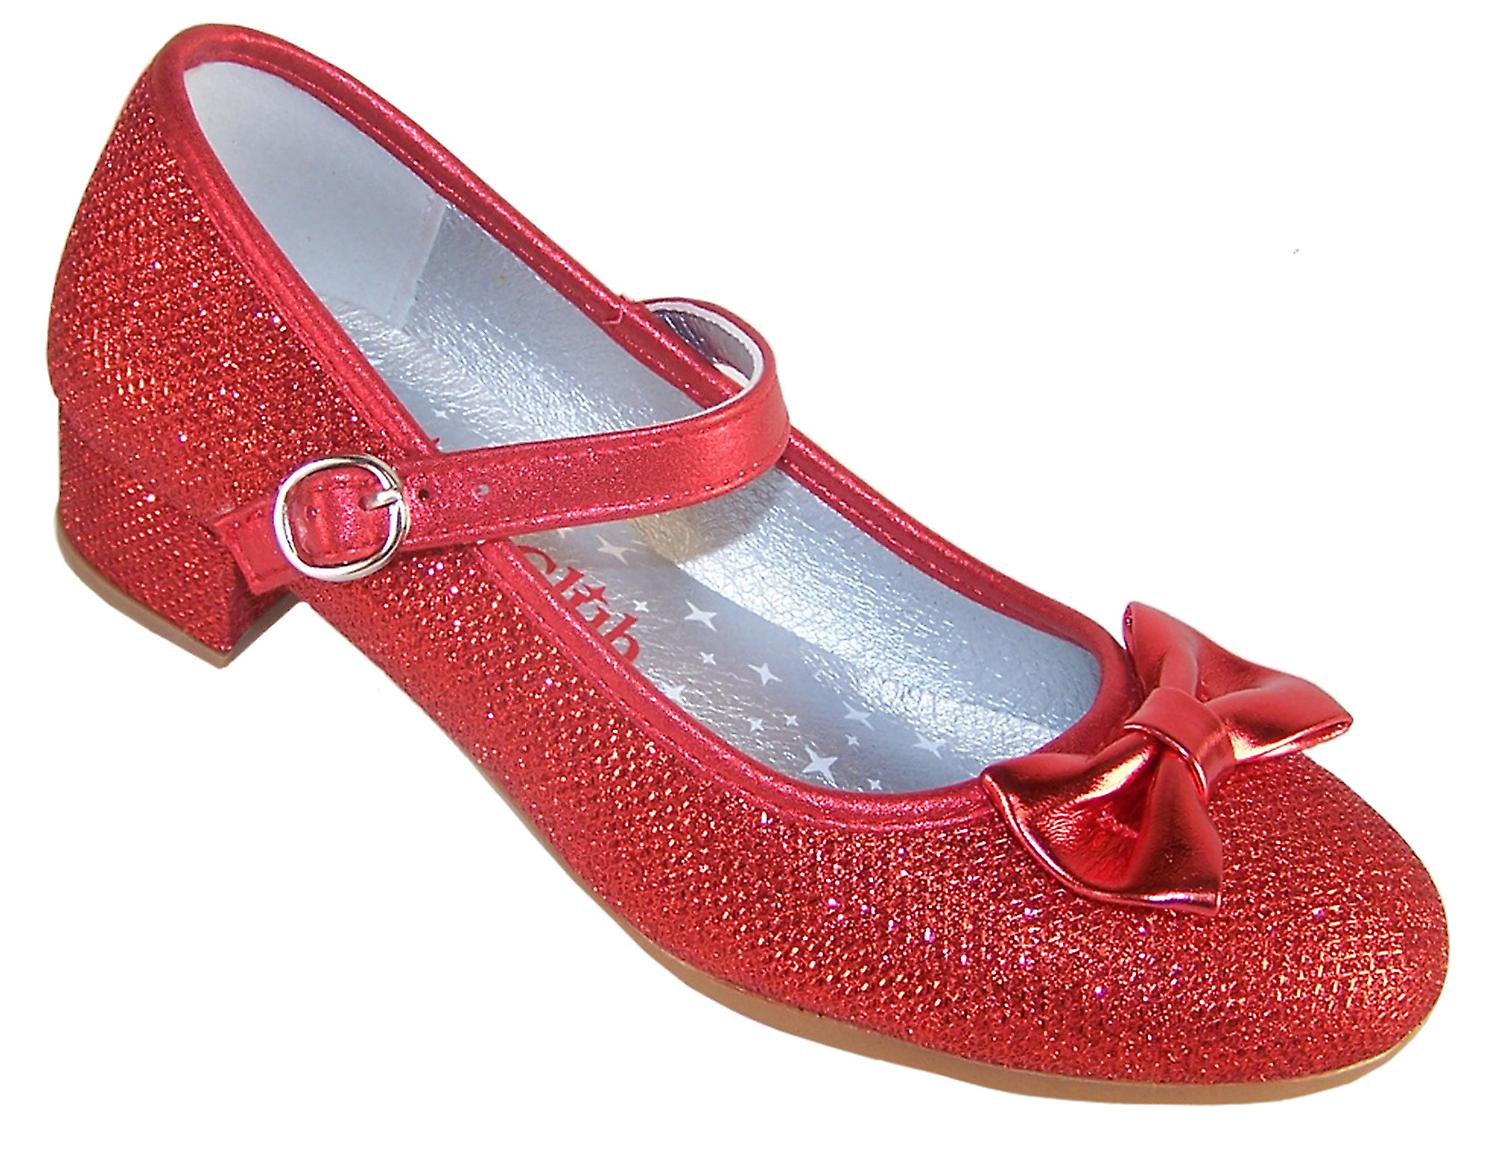 Girls red sparkly low heeled party shoes